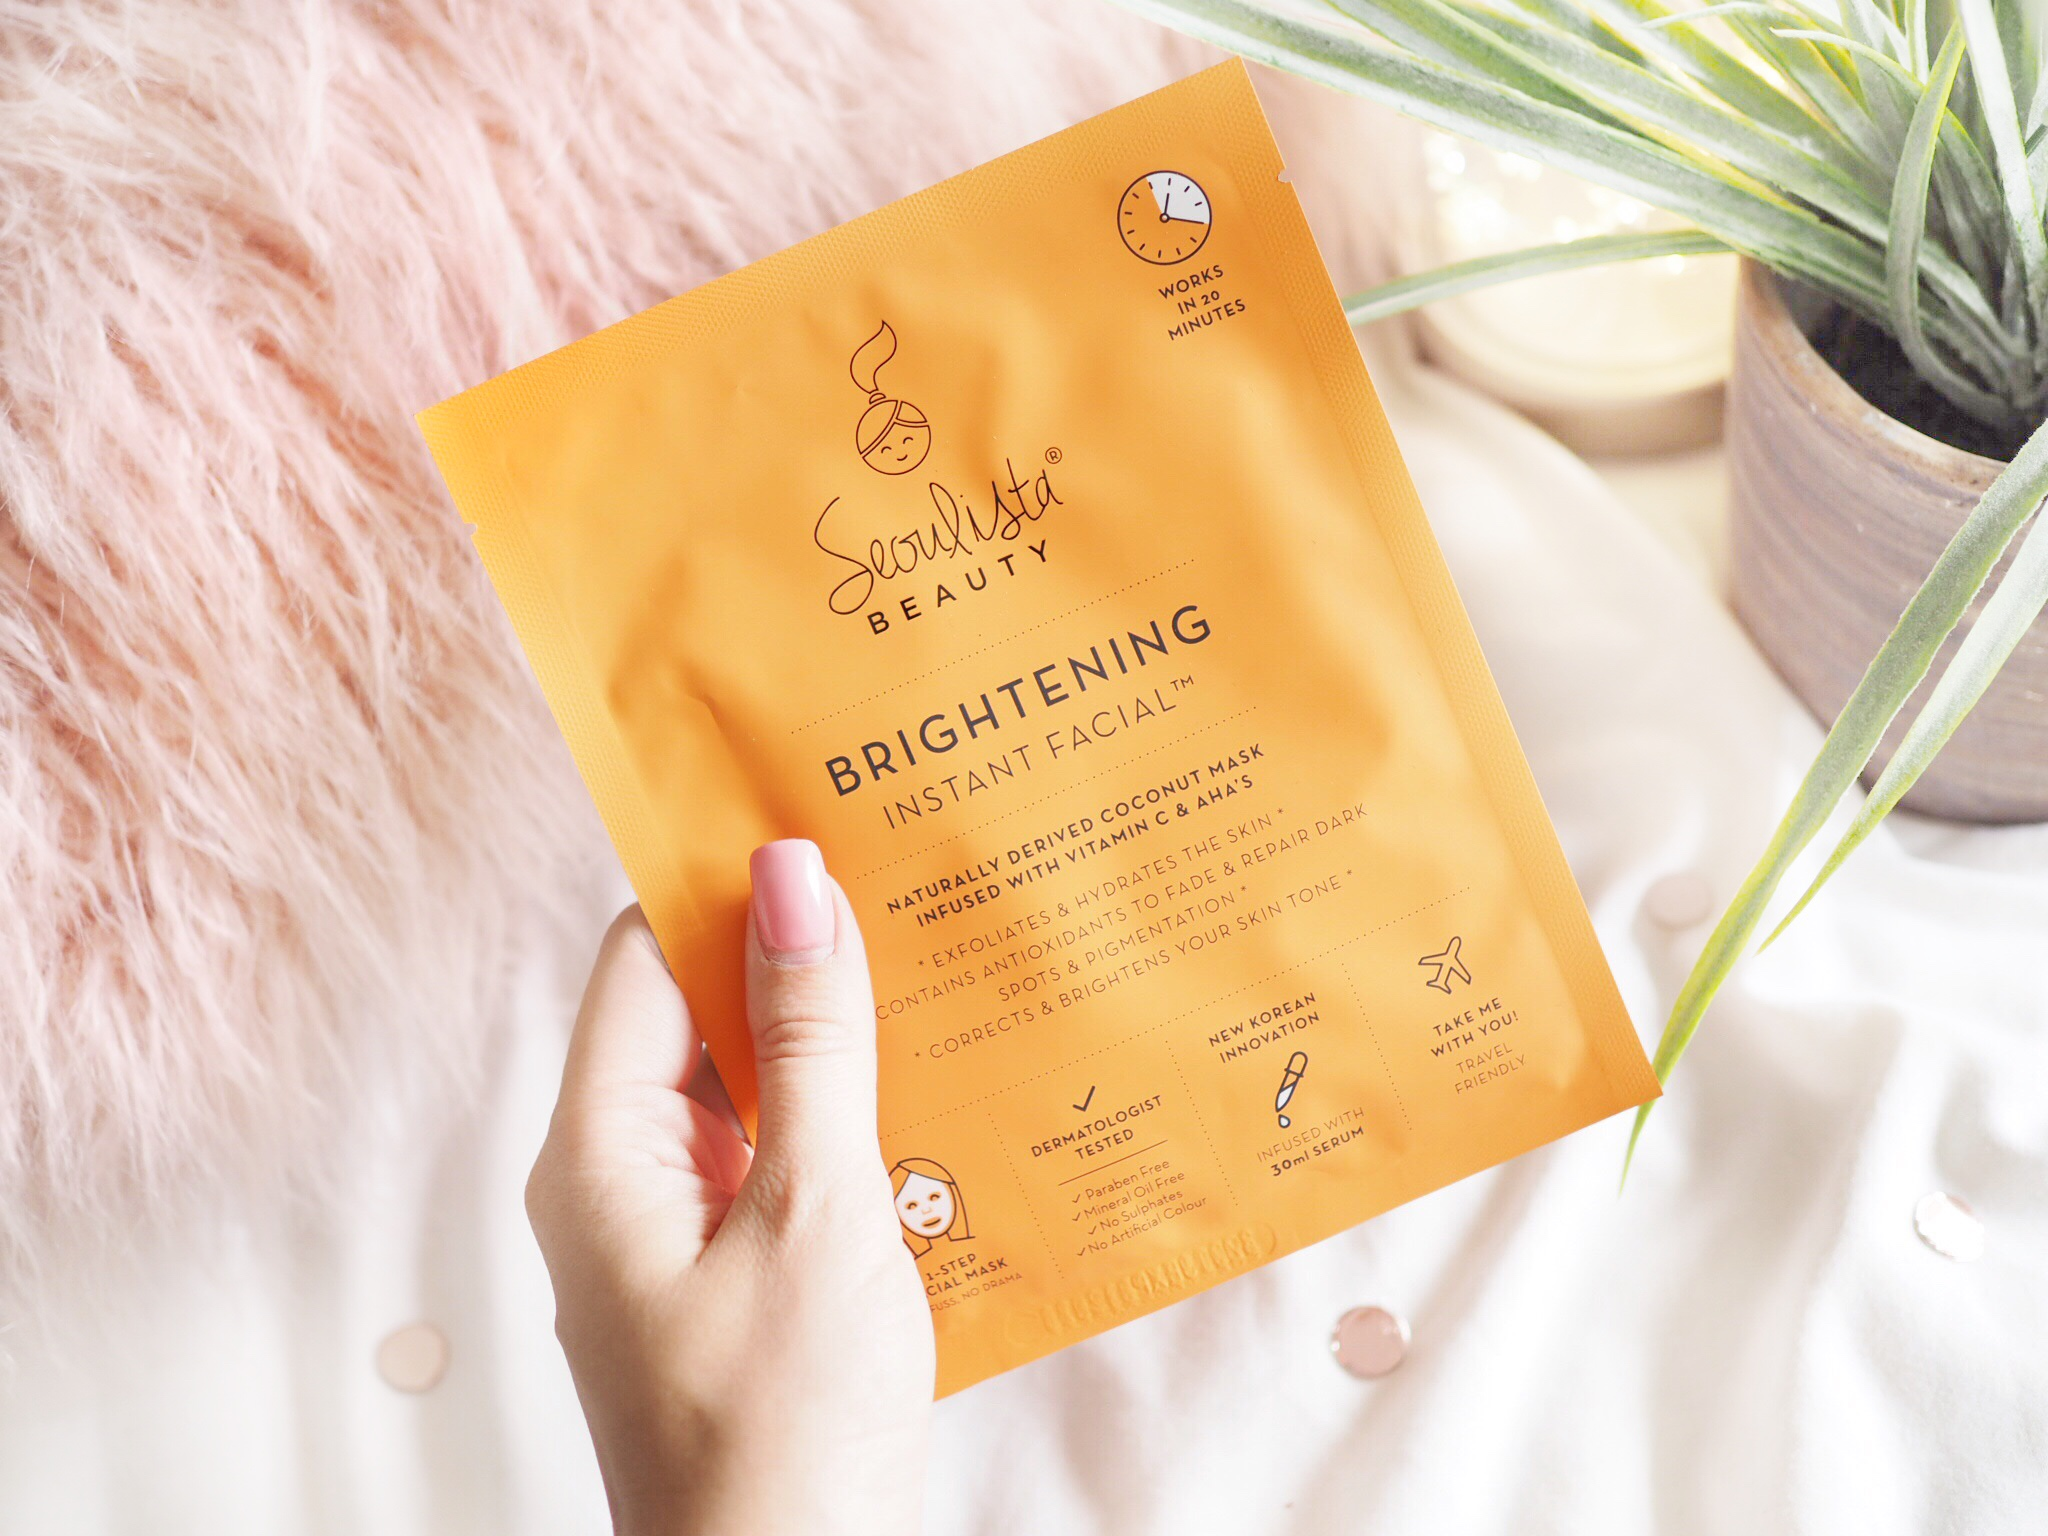 Seolista Brightening Instant Facial Sheet Mask Review